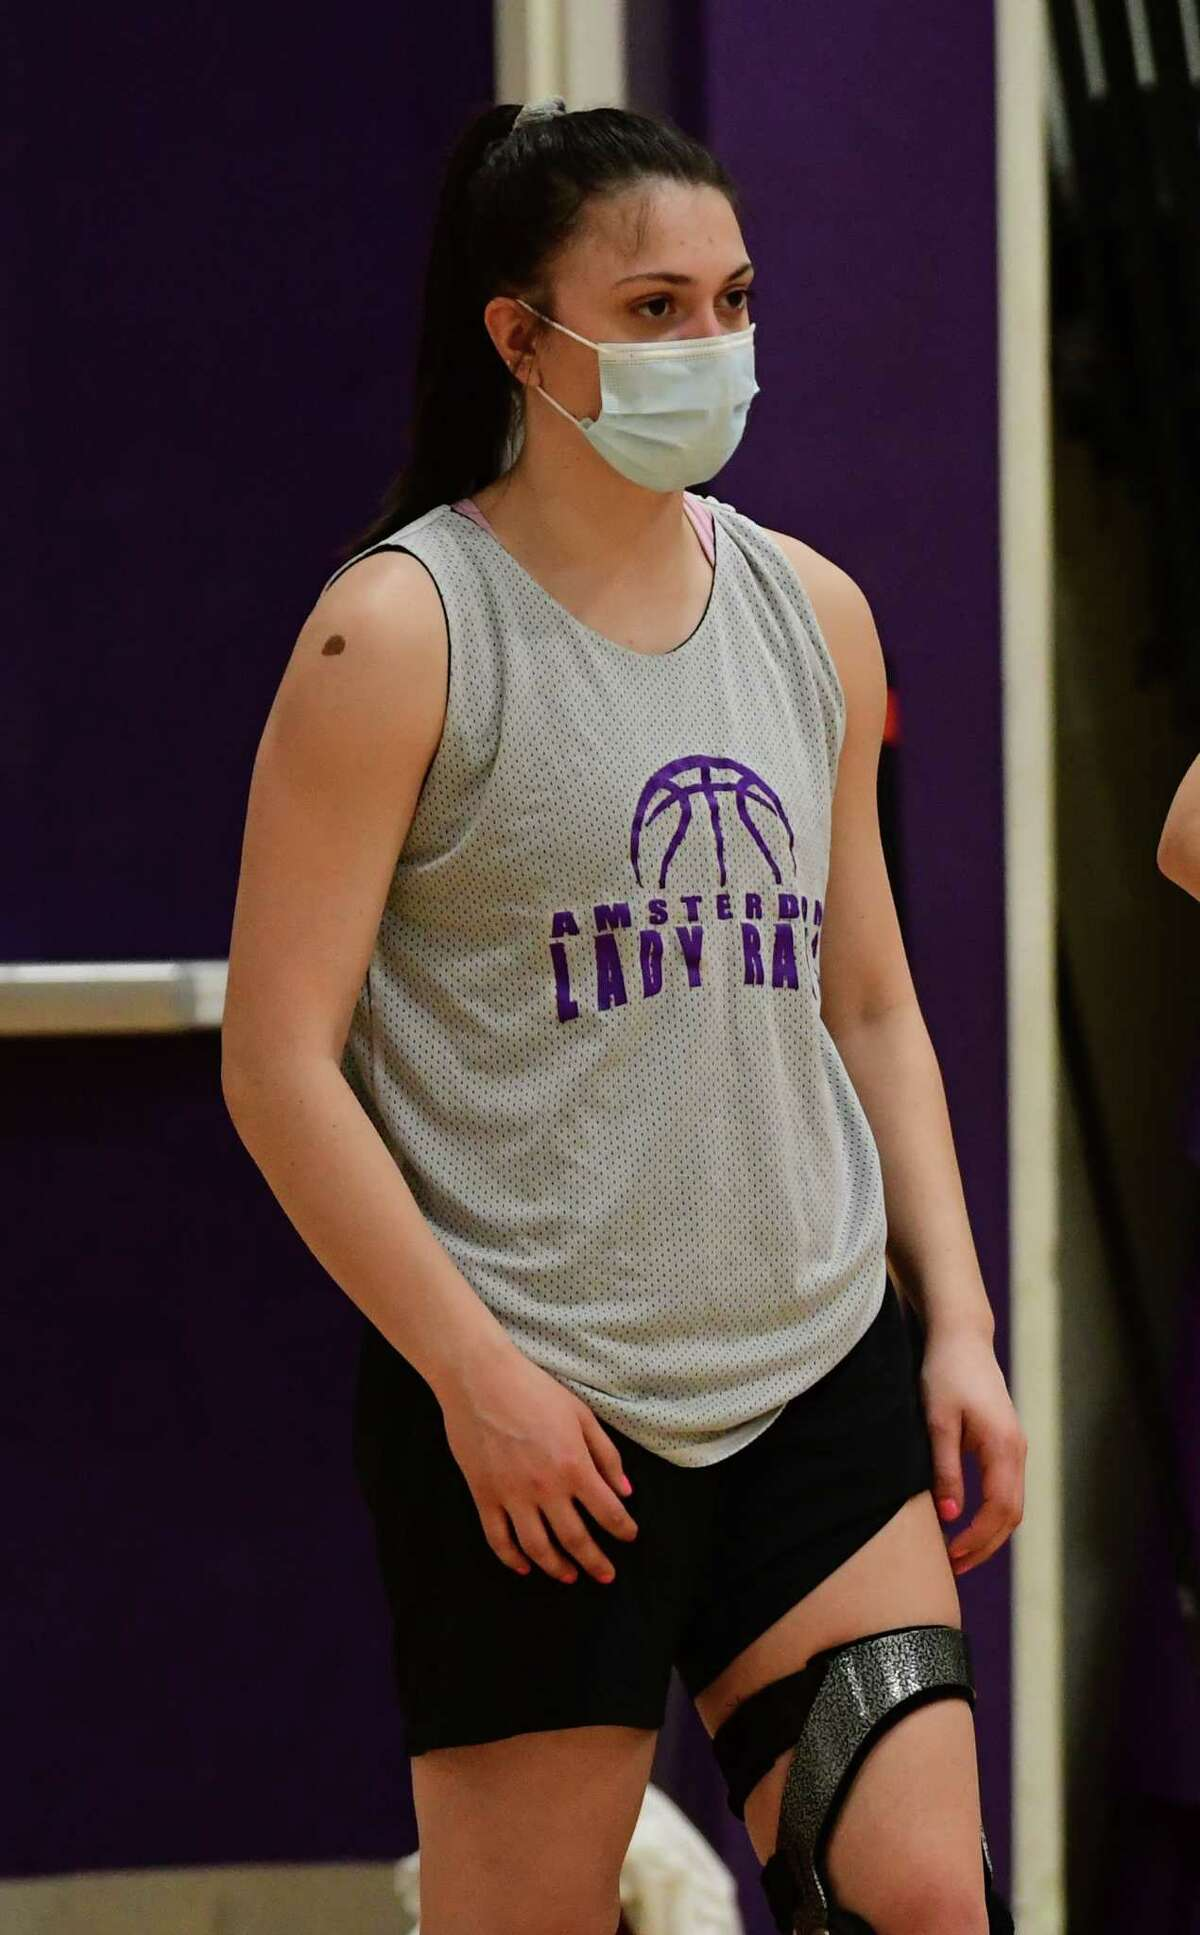 Amsterdam senior Jackie Stanavich, who signed to play with Mercy College, is seen during basketball practice with her team on Thursday, Feb. 4, 2021 in Amsterdam, N.Y. (Lori Van Buren/Times Union)